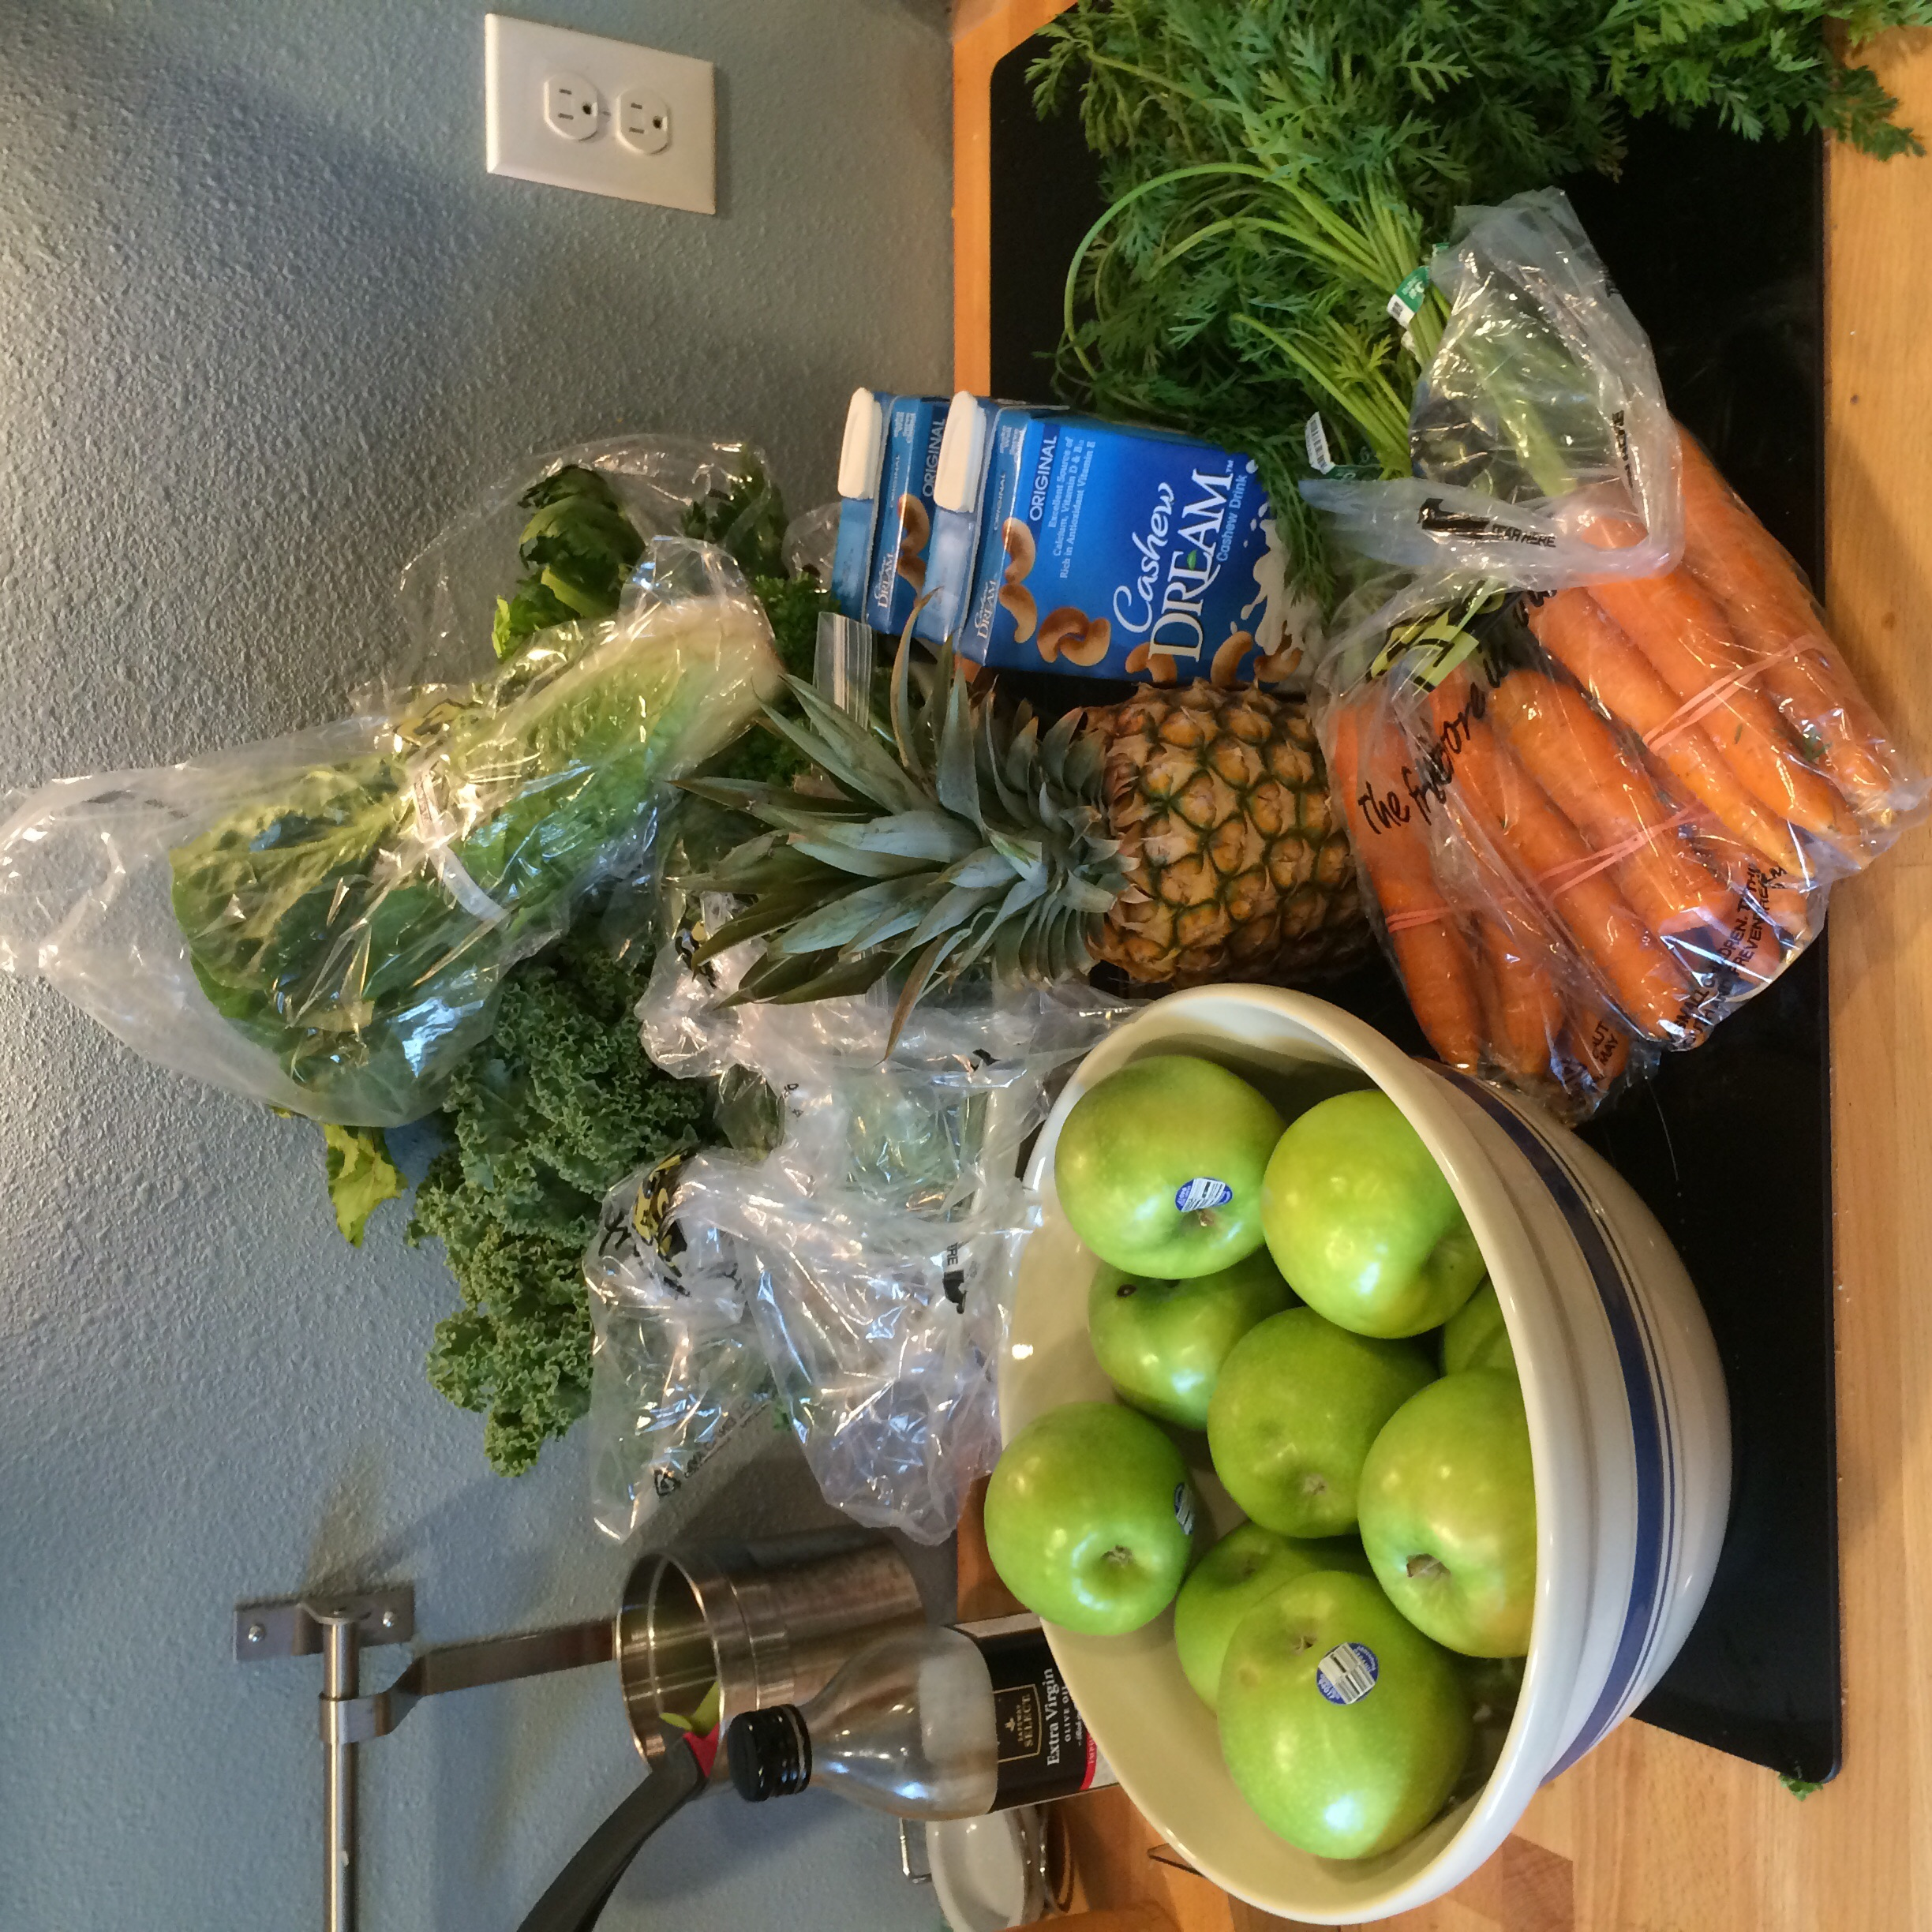 All of this for just 3 days of juice?  This is more vegetables and fruit than I ate last year!